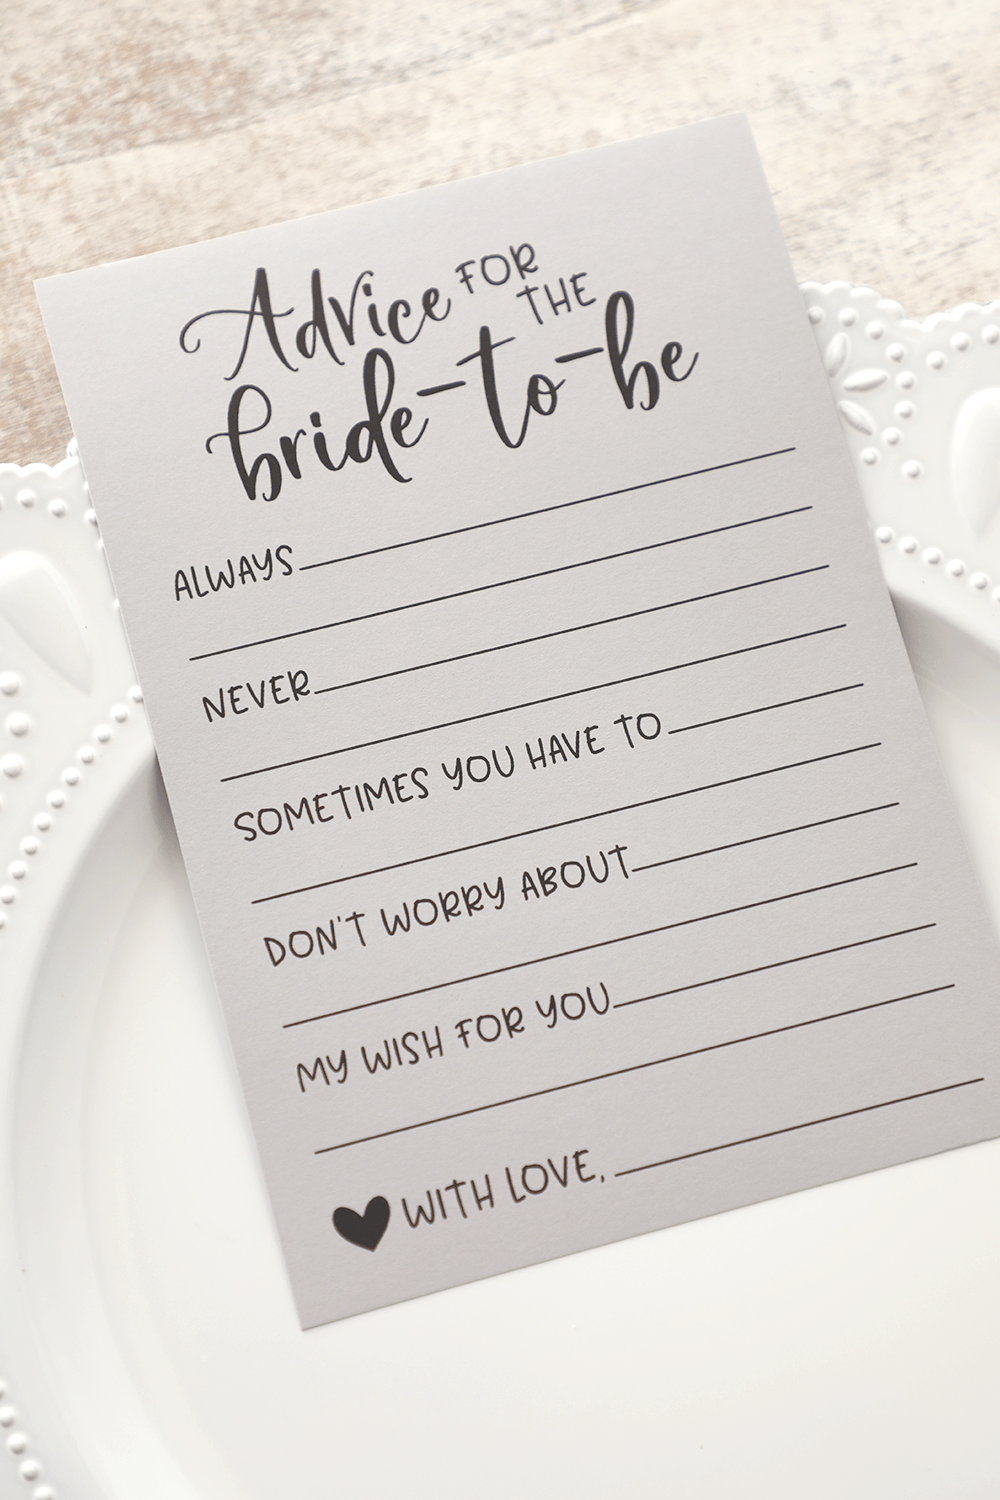 Grey Advice For The Bride Cards Advice For The Bride Cards Etsy In 2020 Bridal Shower Advice Cards Bridal Shower Advice Bridal Shower Activities